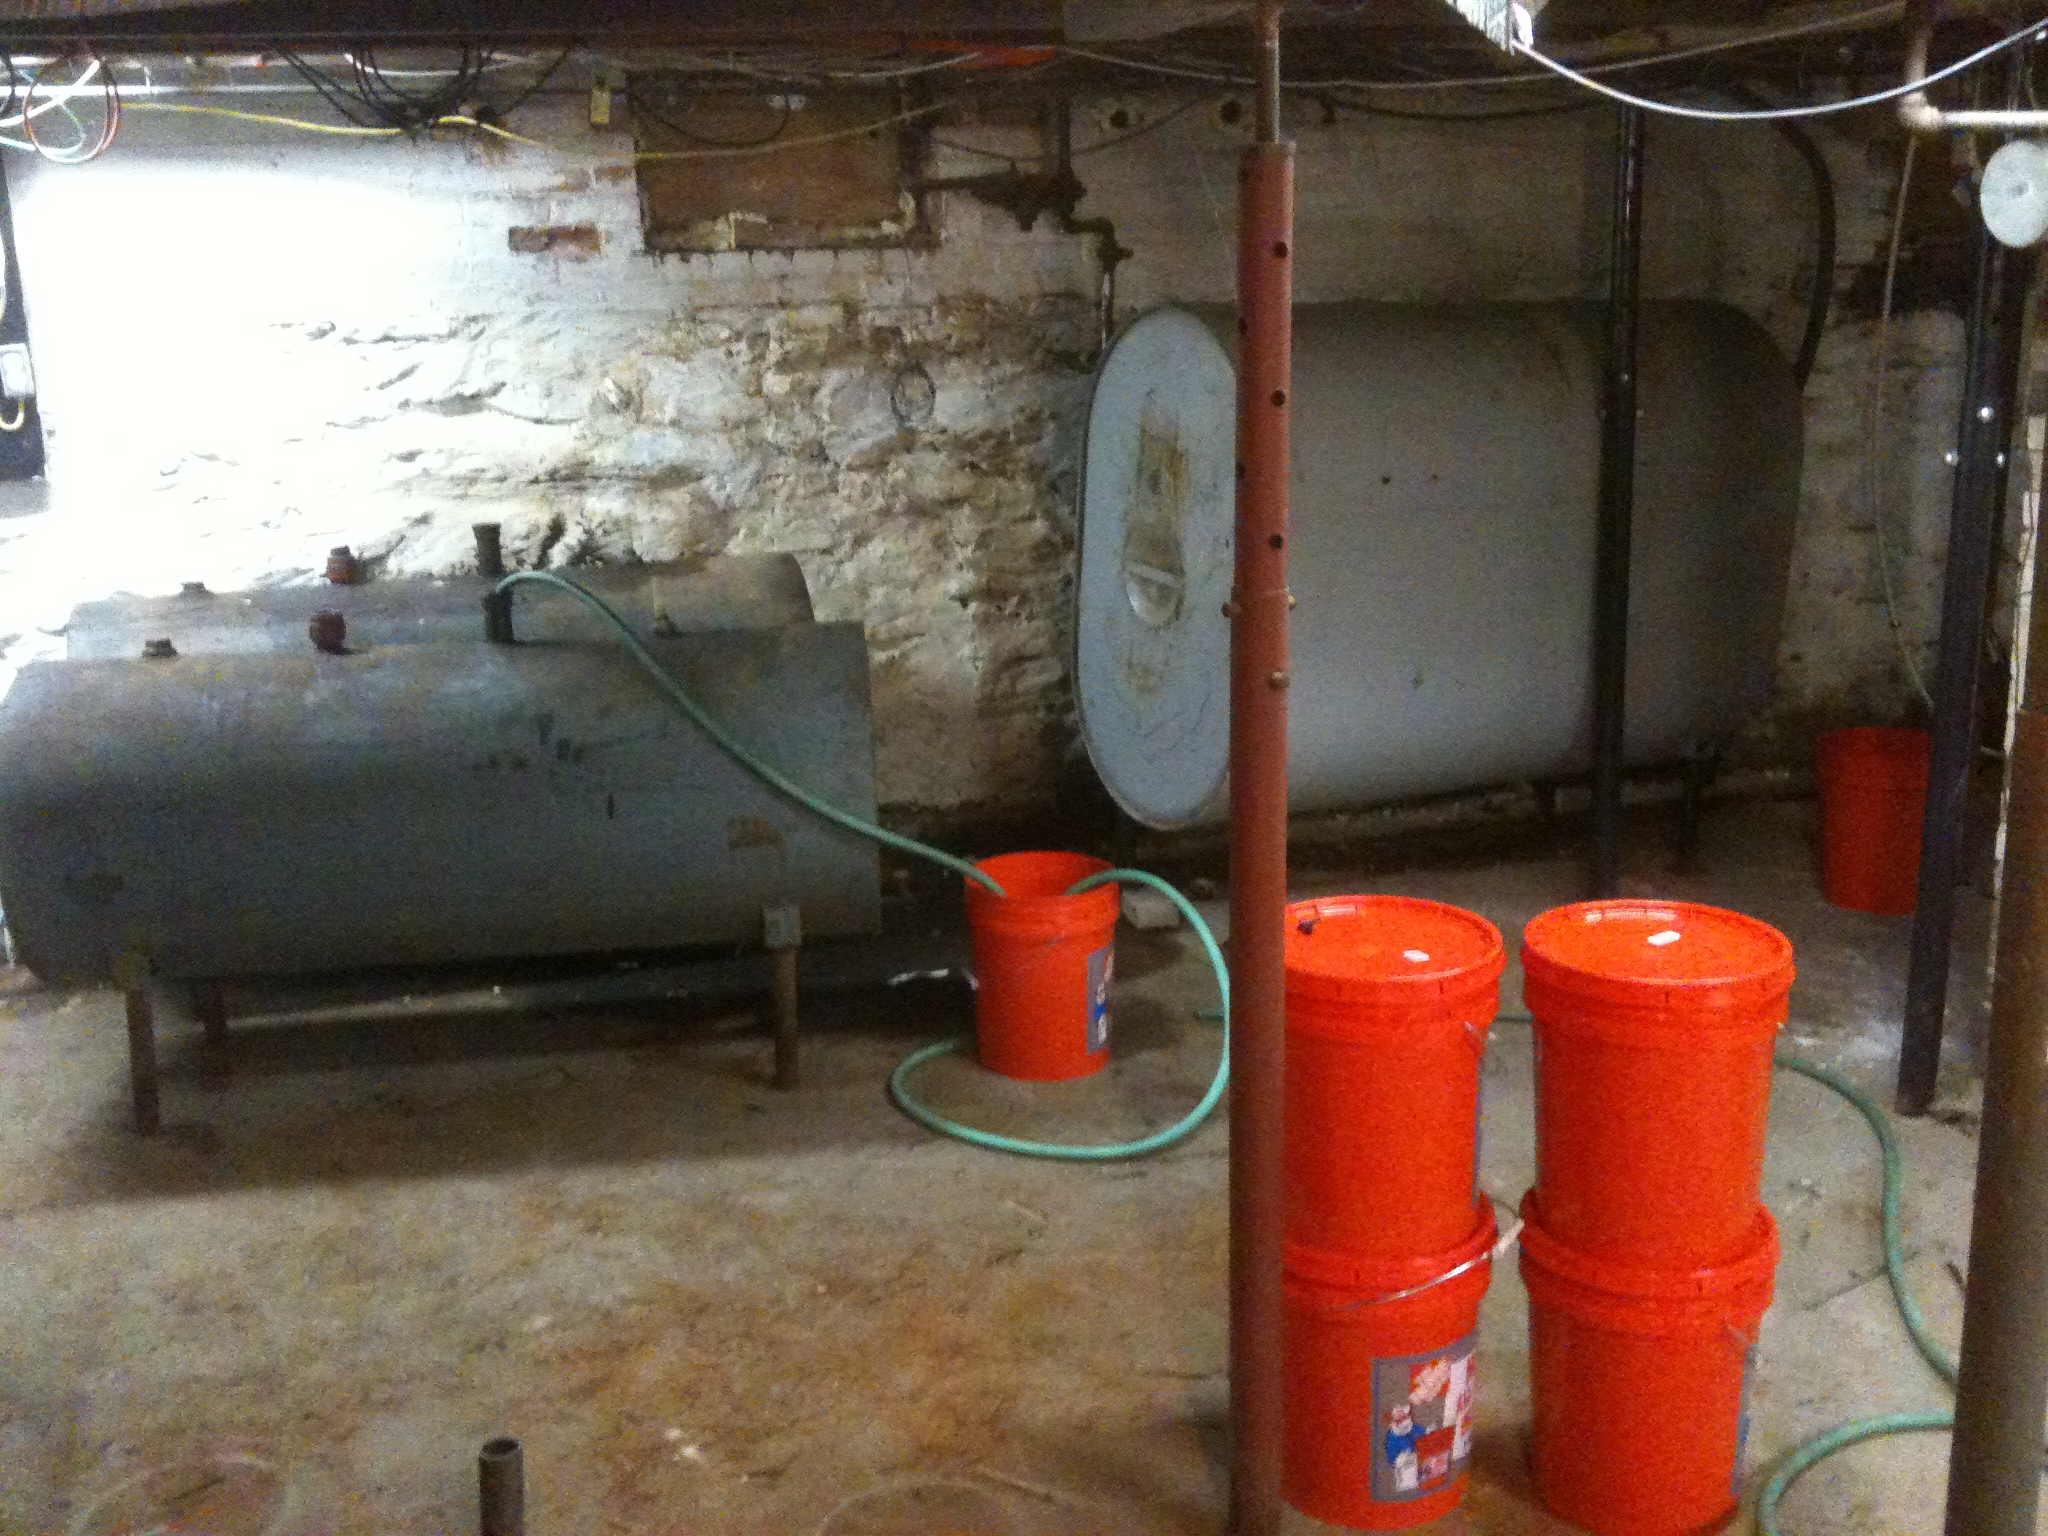 A Basement With Three Oil Tanks: One Containing 65 Gallons Of K1 And Two  Very Old Tanks Each Containing About 50 Gallons Of #2 Heating Oil.